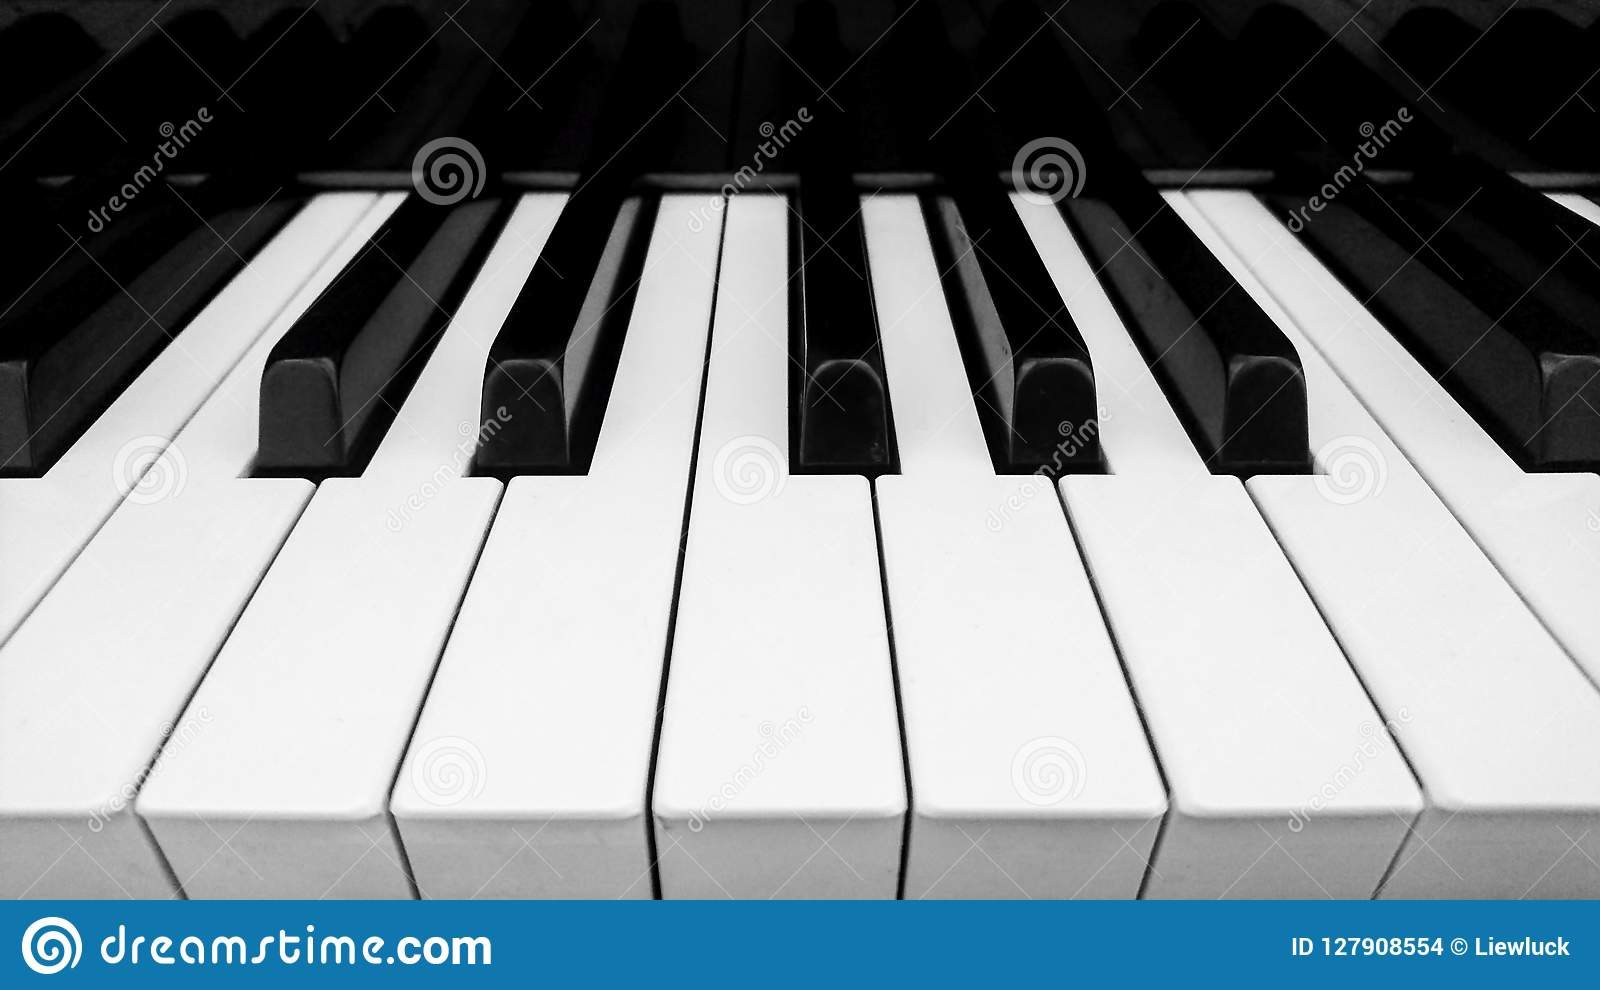 Brunette picture of piano black keys racism open sexy photos